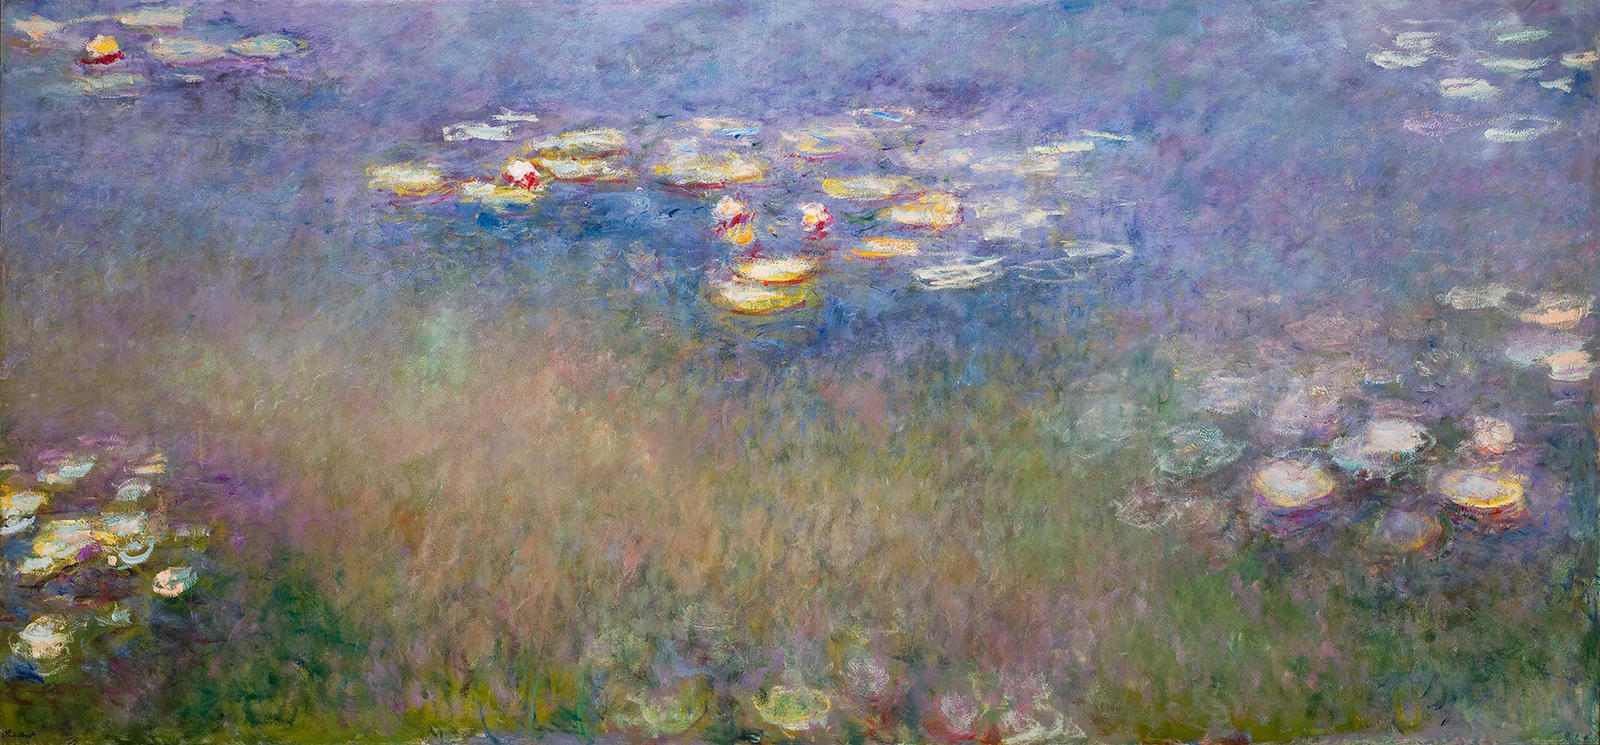 """Monet, """"Water Lilies"""" 1915-26, oil on canvas, Saint Louis Art Museum, The Steinberg Charitable Fund 134:1956"""